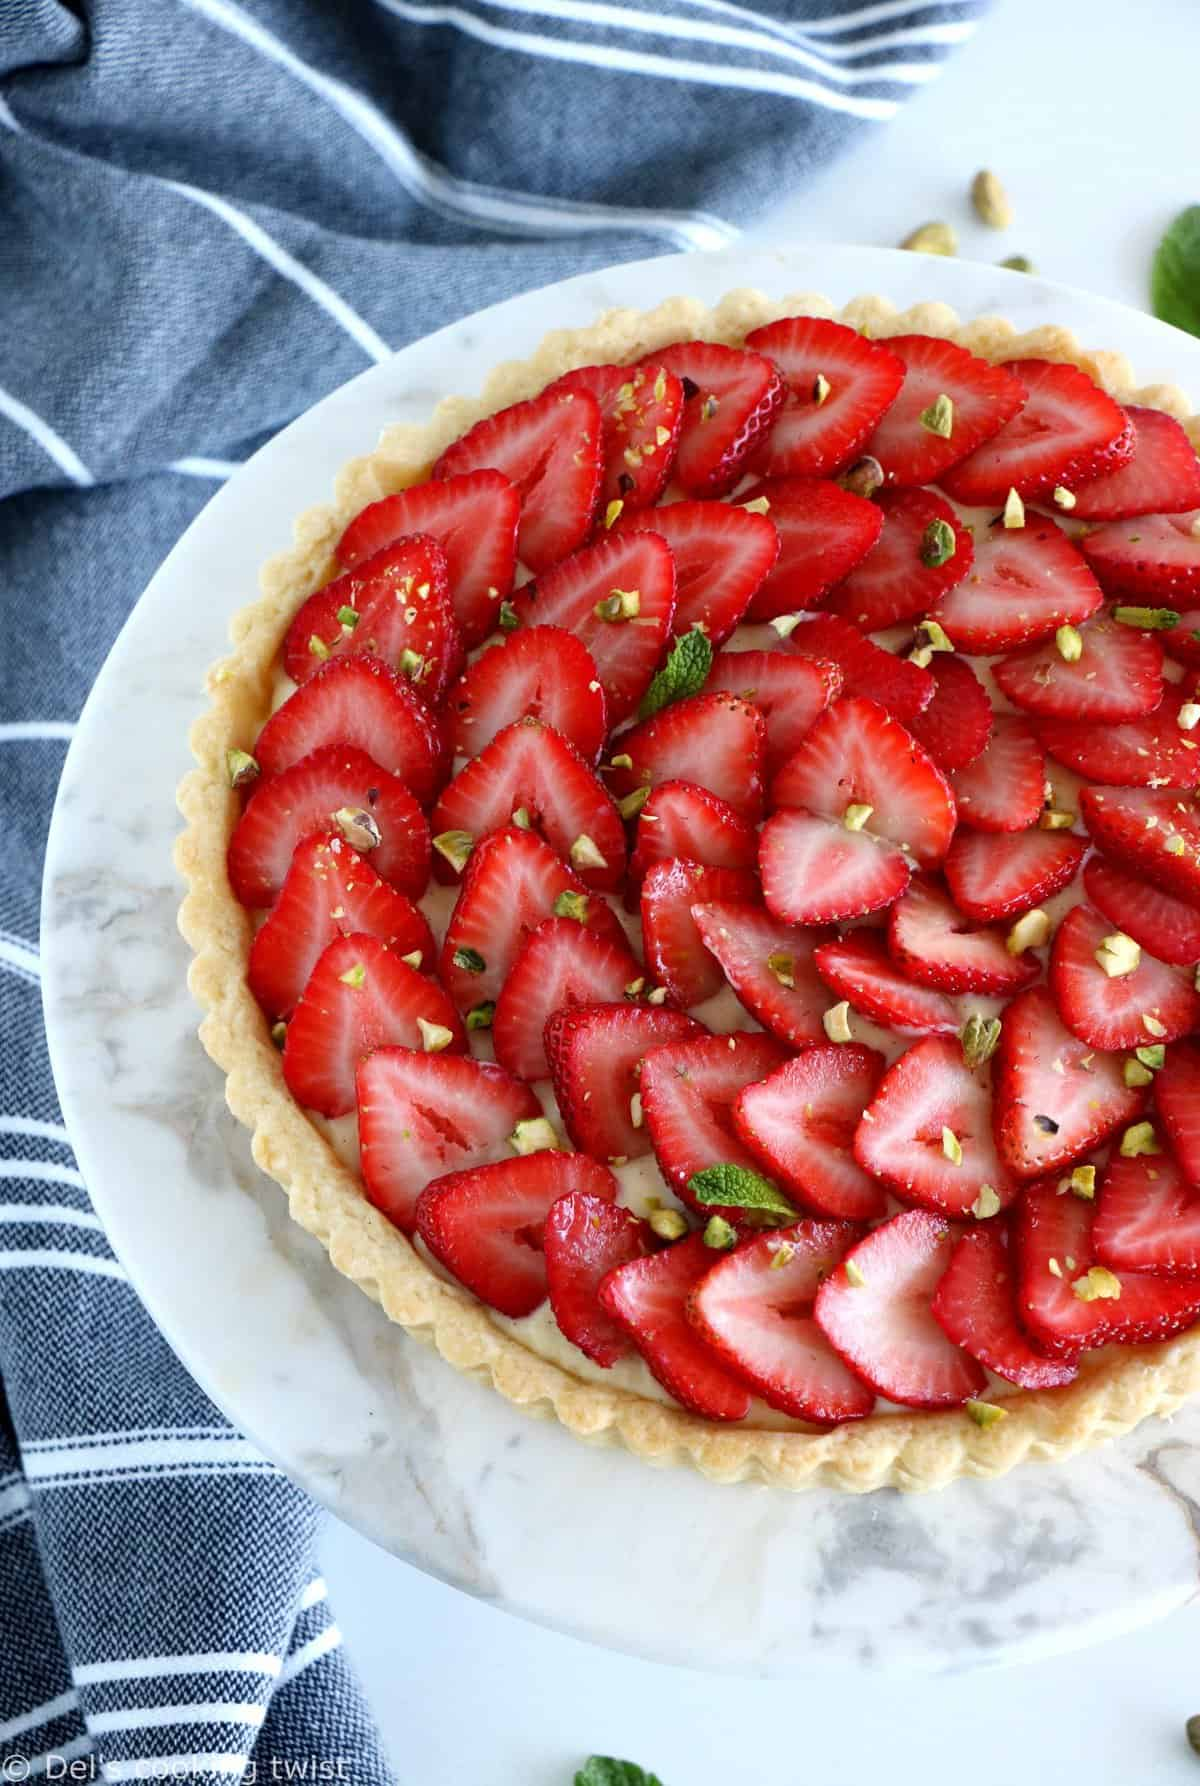 French Strawberry Tart with Pastry Cream